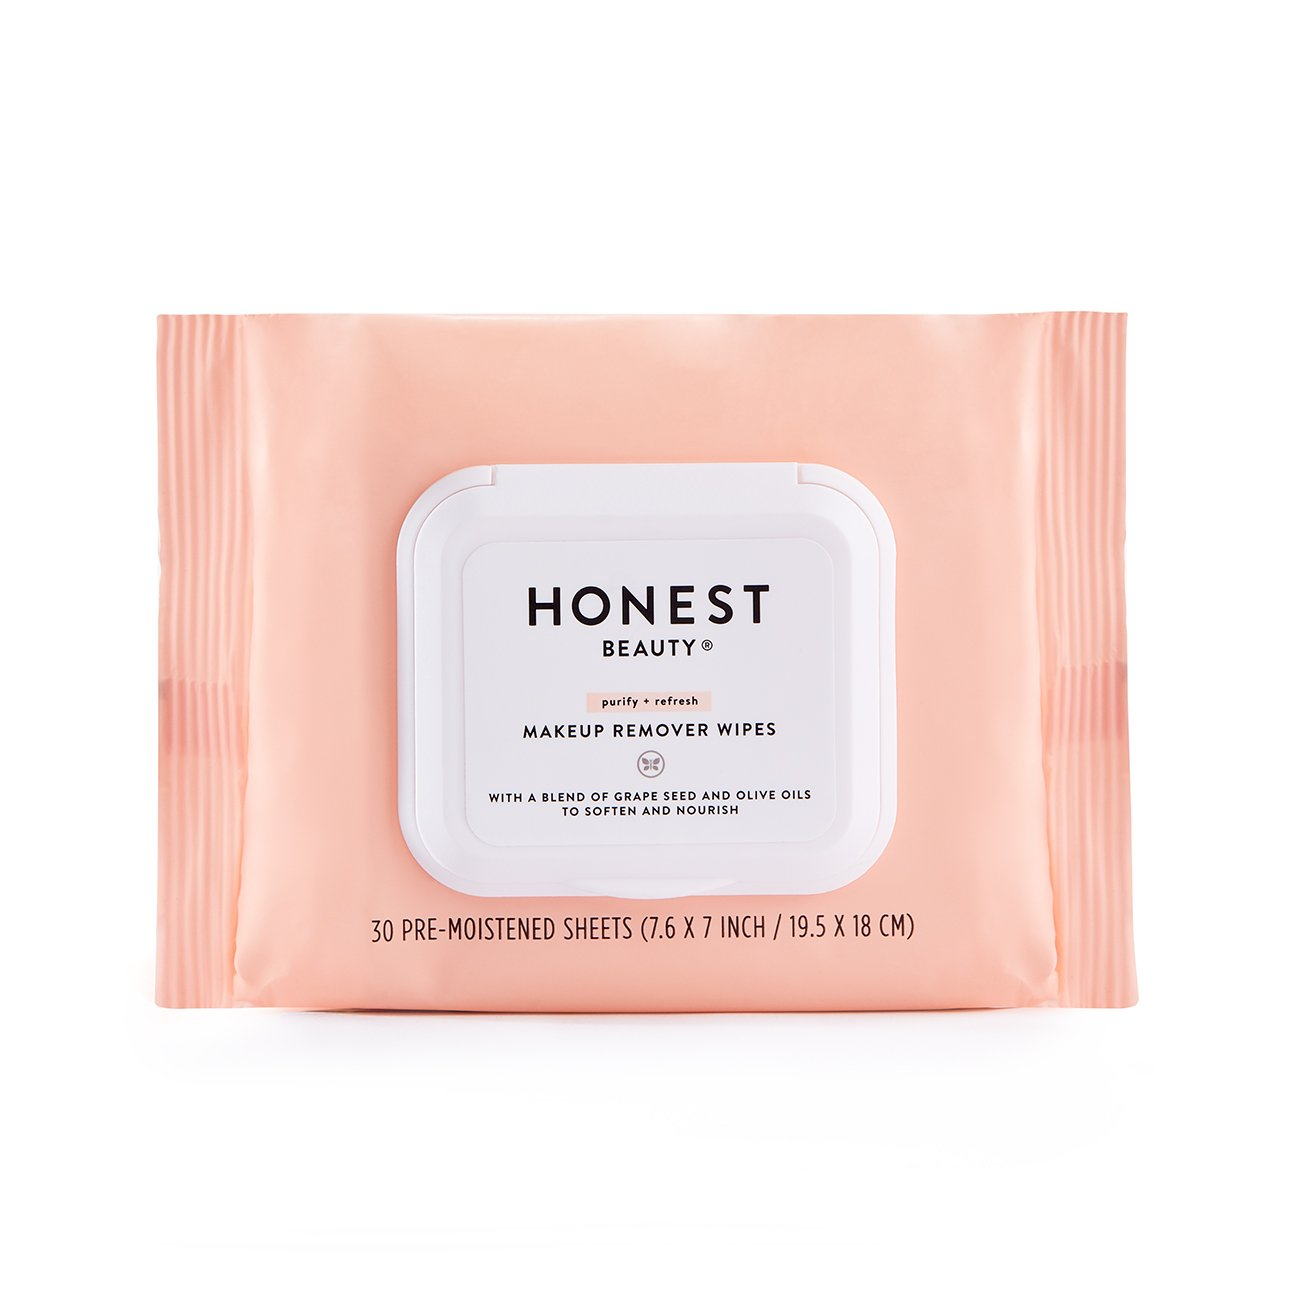 Honest Beauty Makeup Remover Wipes With Grape Seed & Olive Oils | Paraben Free, Synthetic Fragrance Free, Dermatologist Tested, Cruelty Free | 30 Count by Honest Beauty